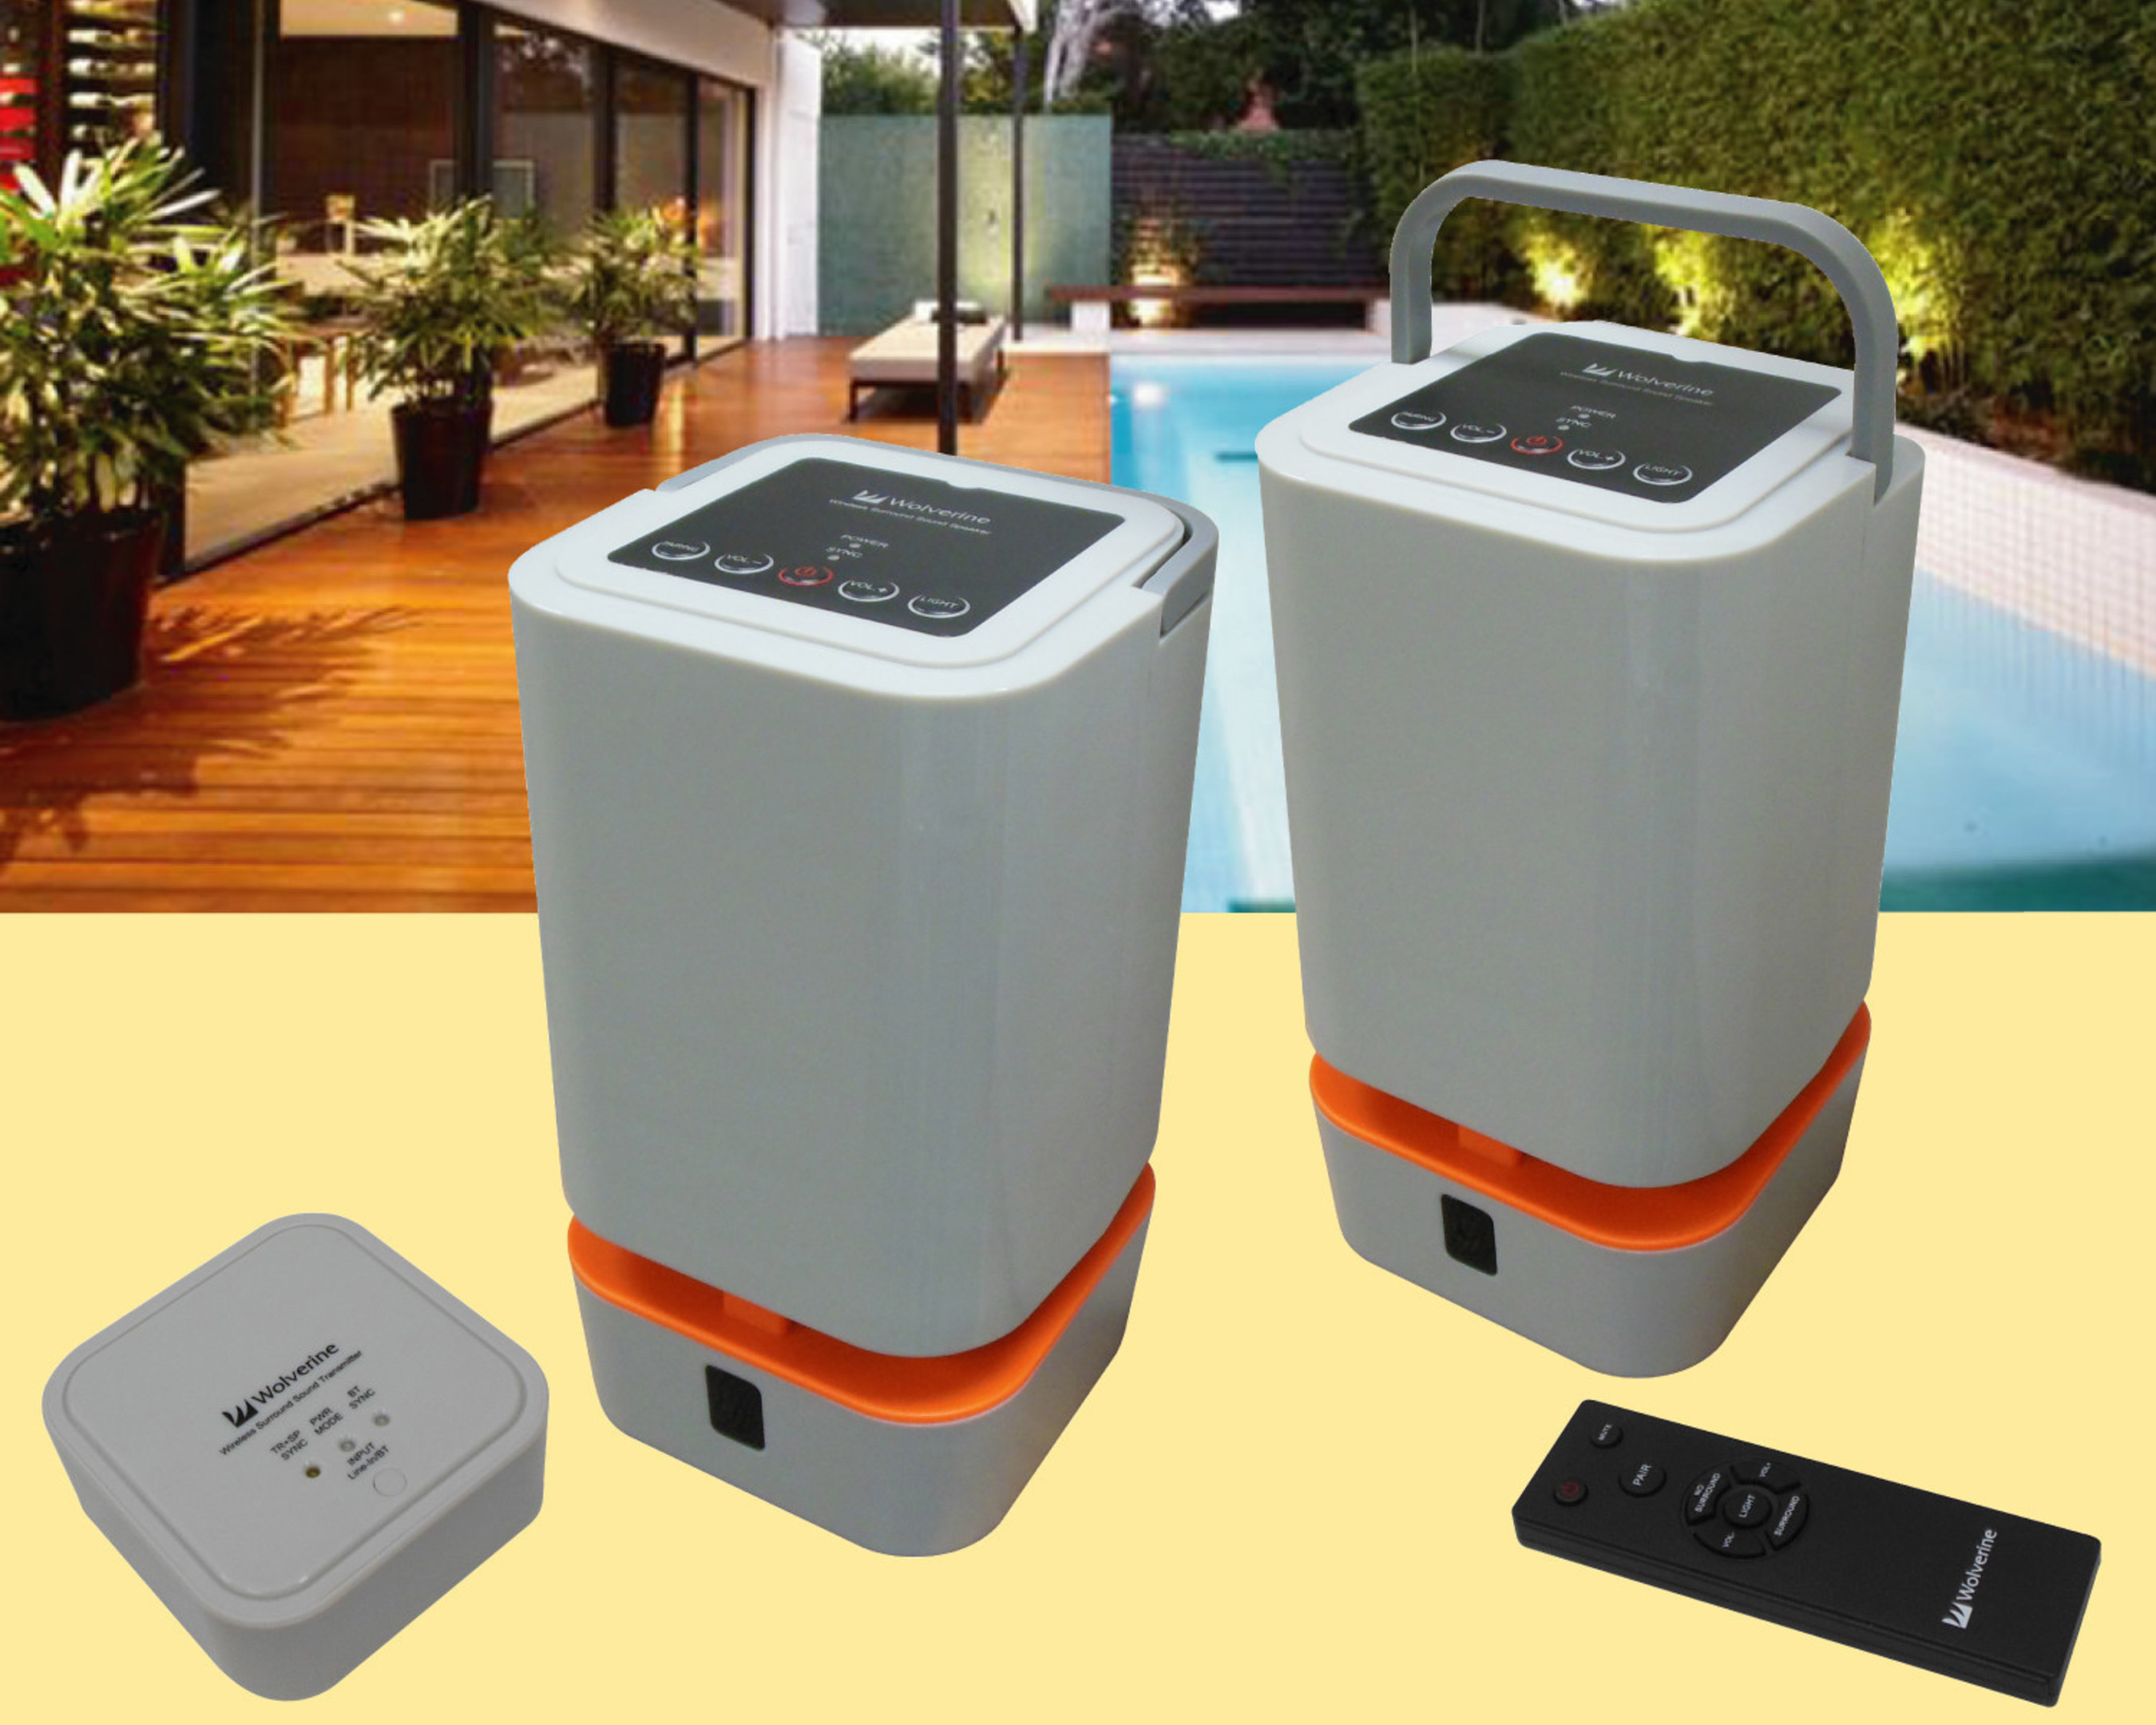 WIOS-5.8 Indoor/Outdoor Wireless Speaker System From Wolverine Data Creates Big Sound in Small, Portable Package